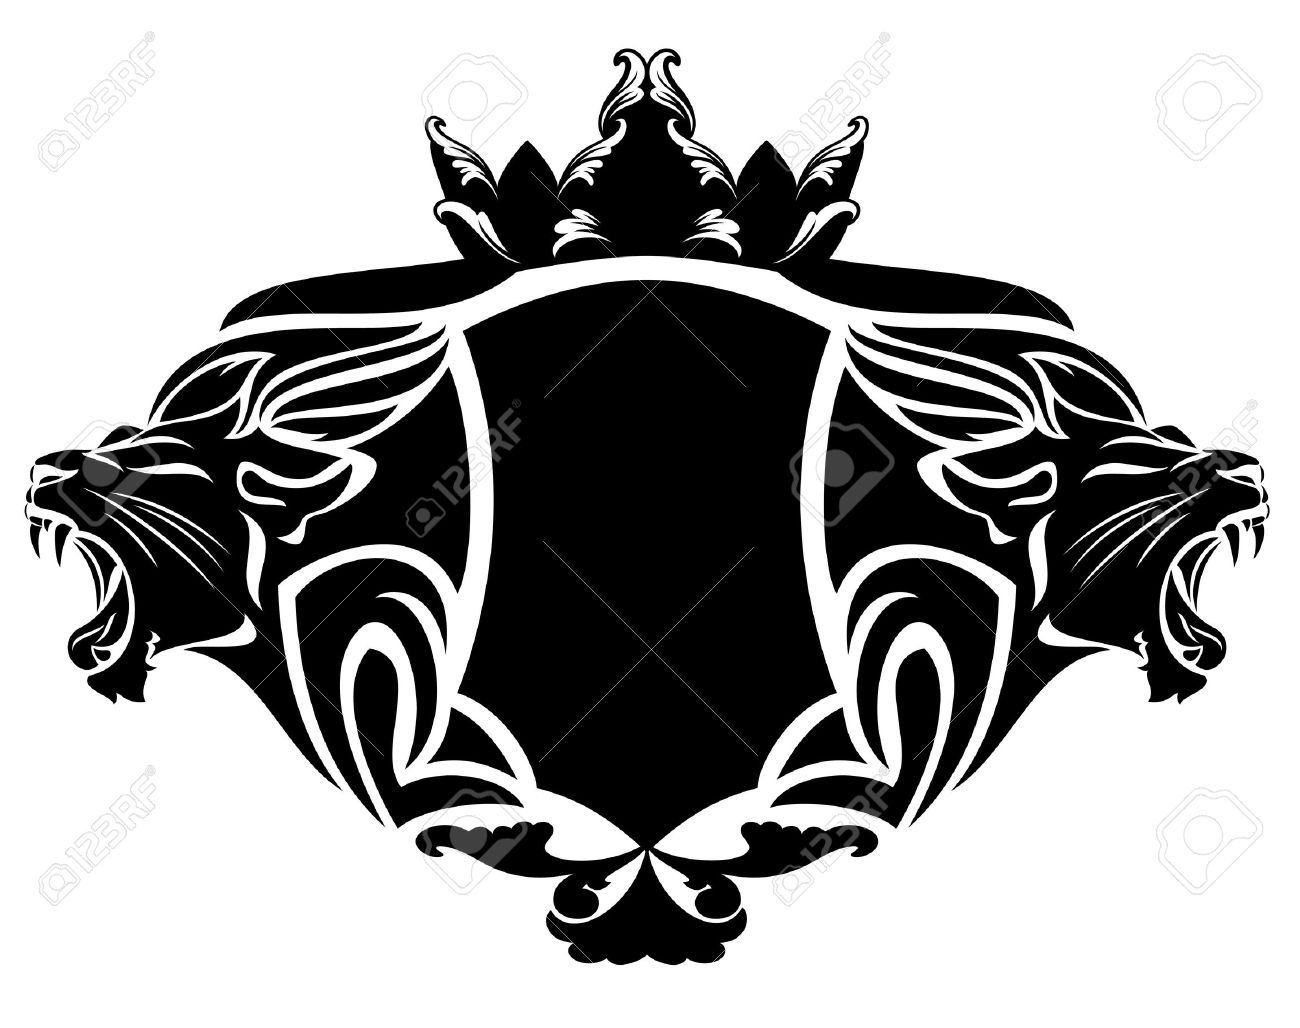 royal lion with crown black and white design element - 30537095